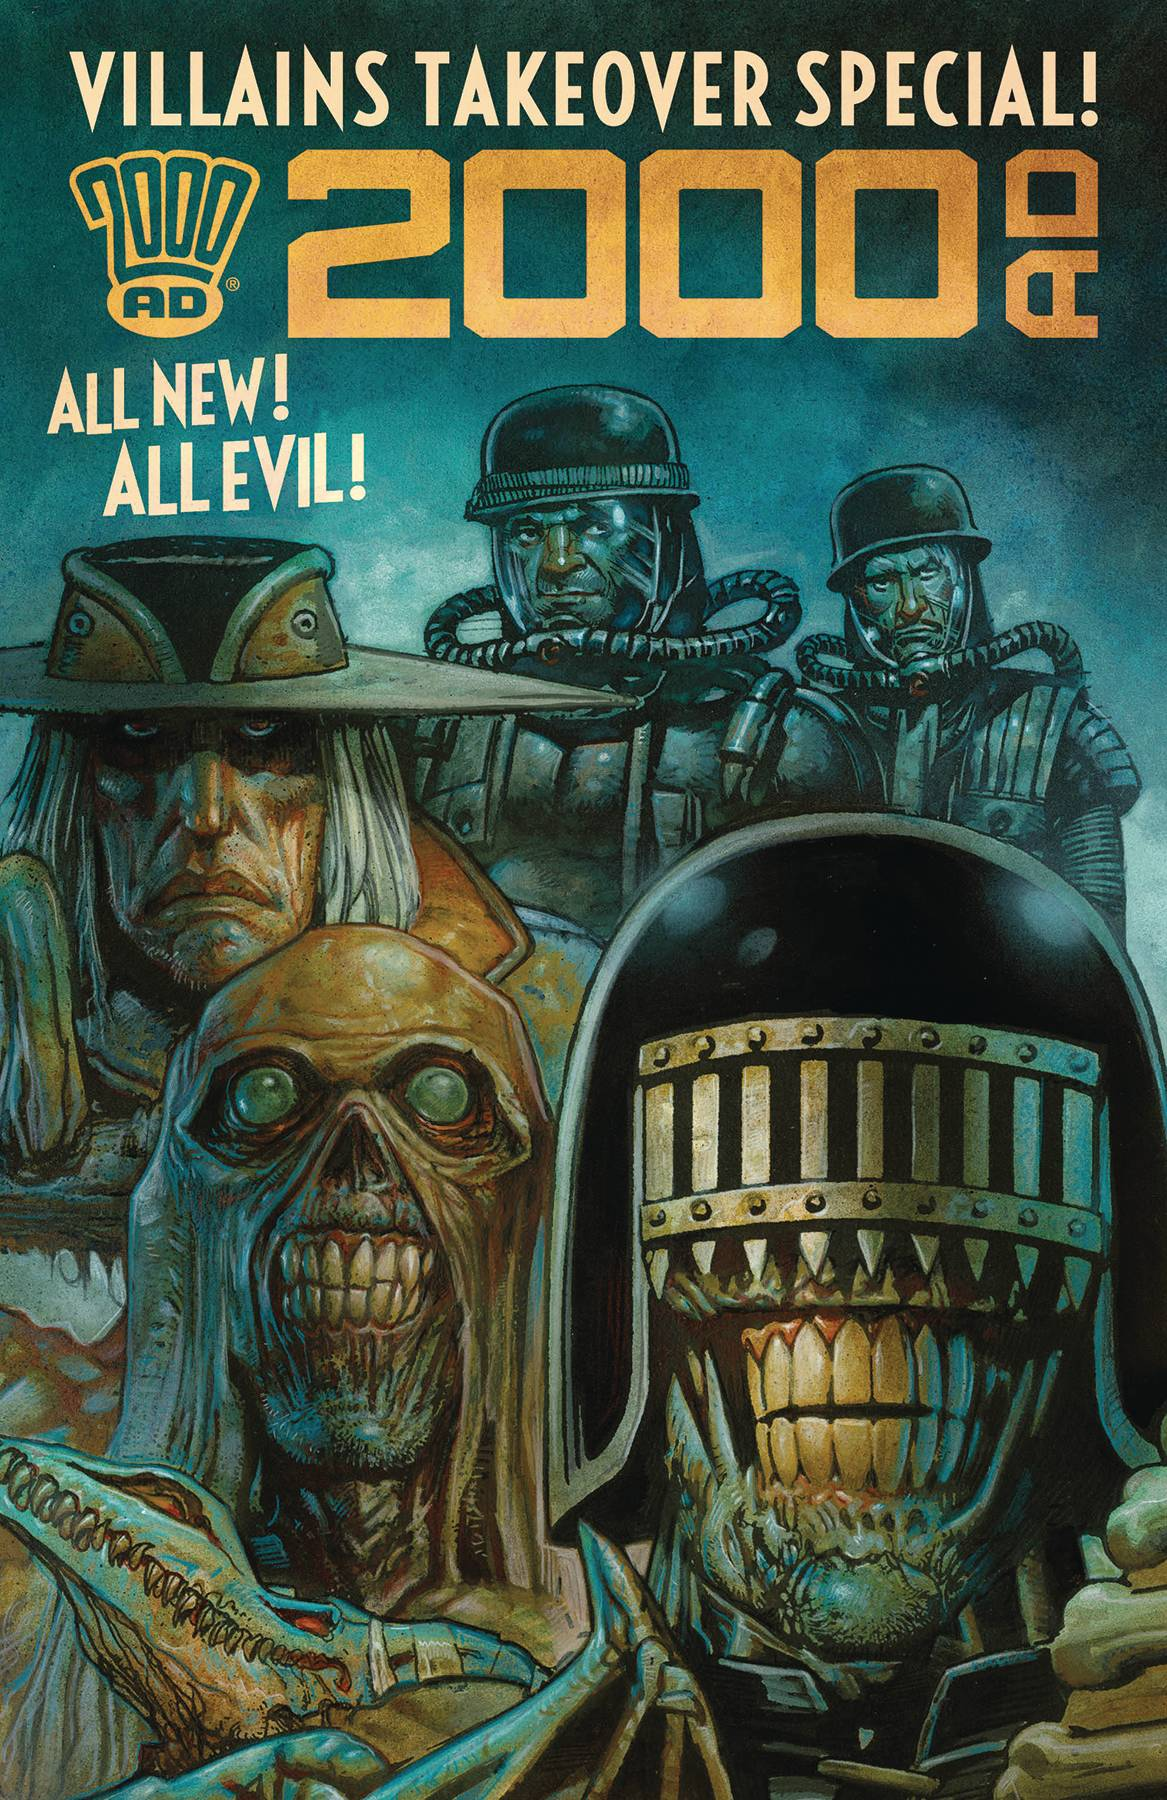 2000 AD VILLAINS TAKEOVER SPECIAL ONESHOT.jpg